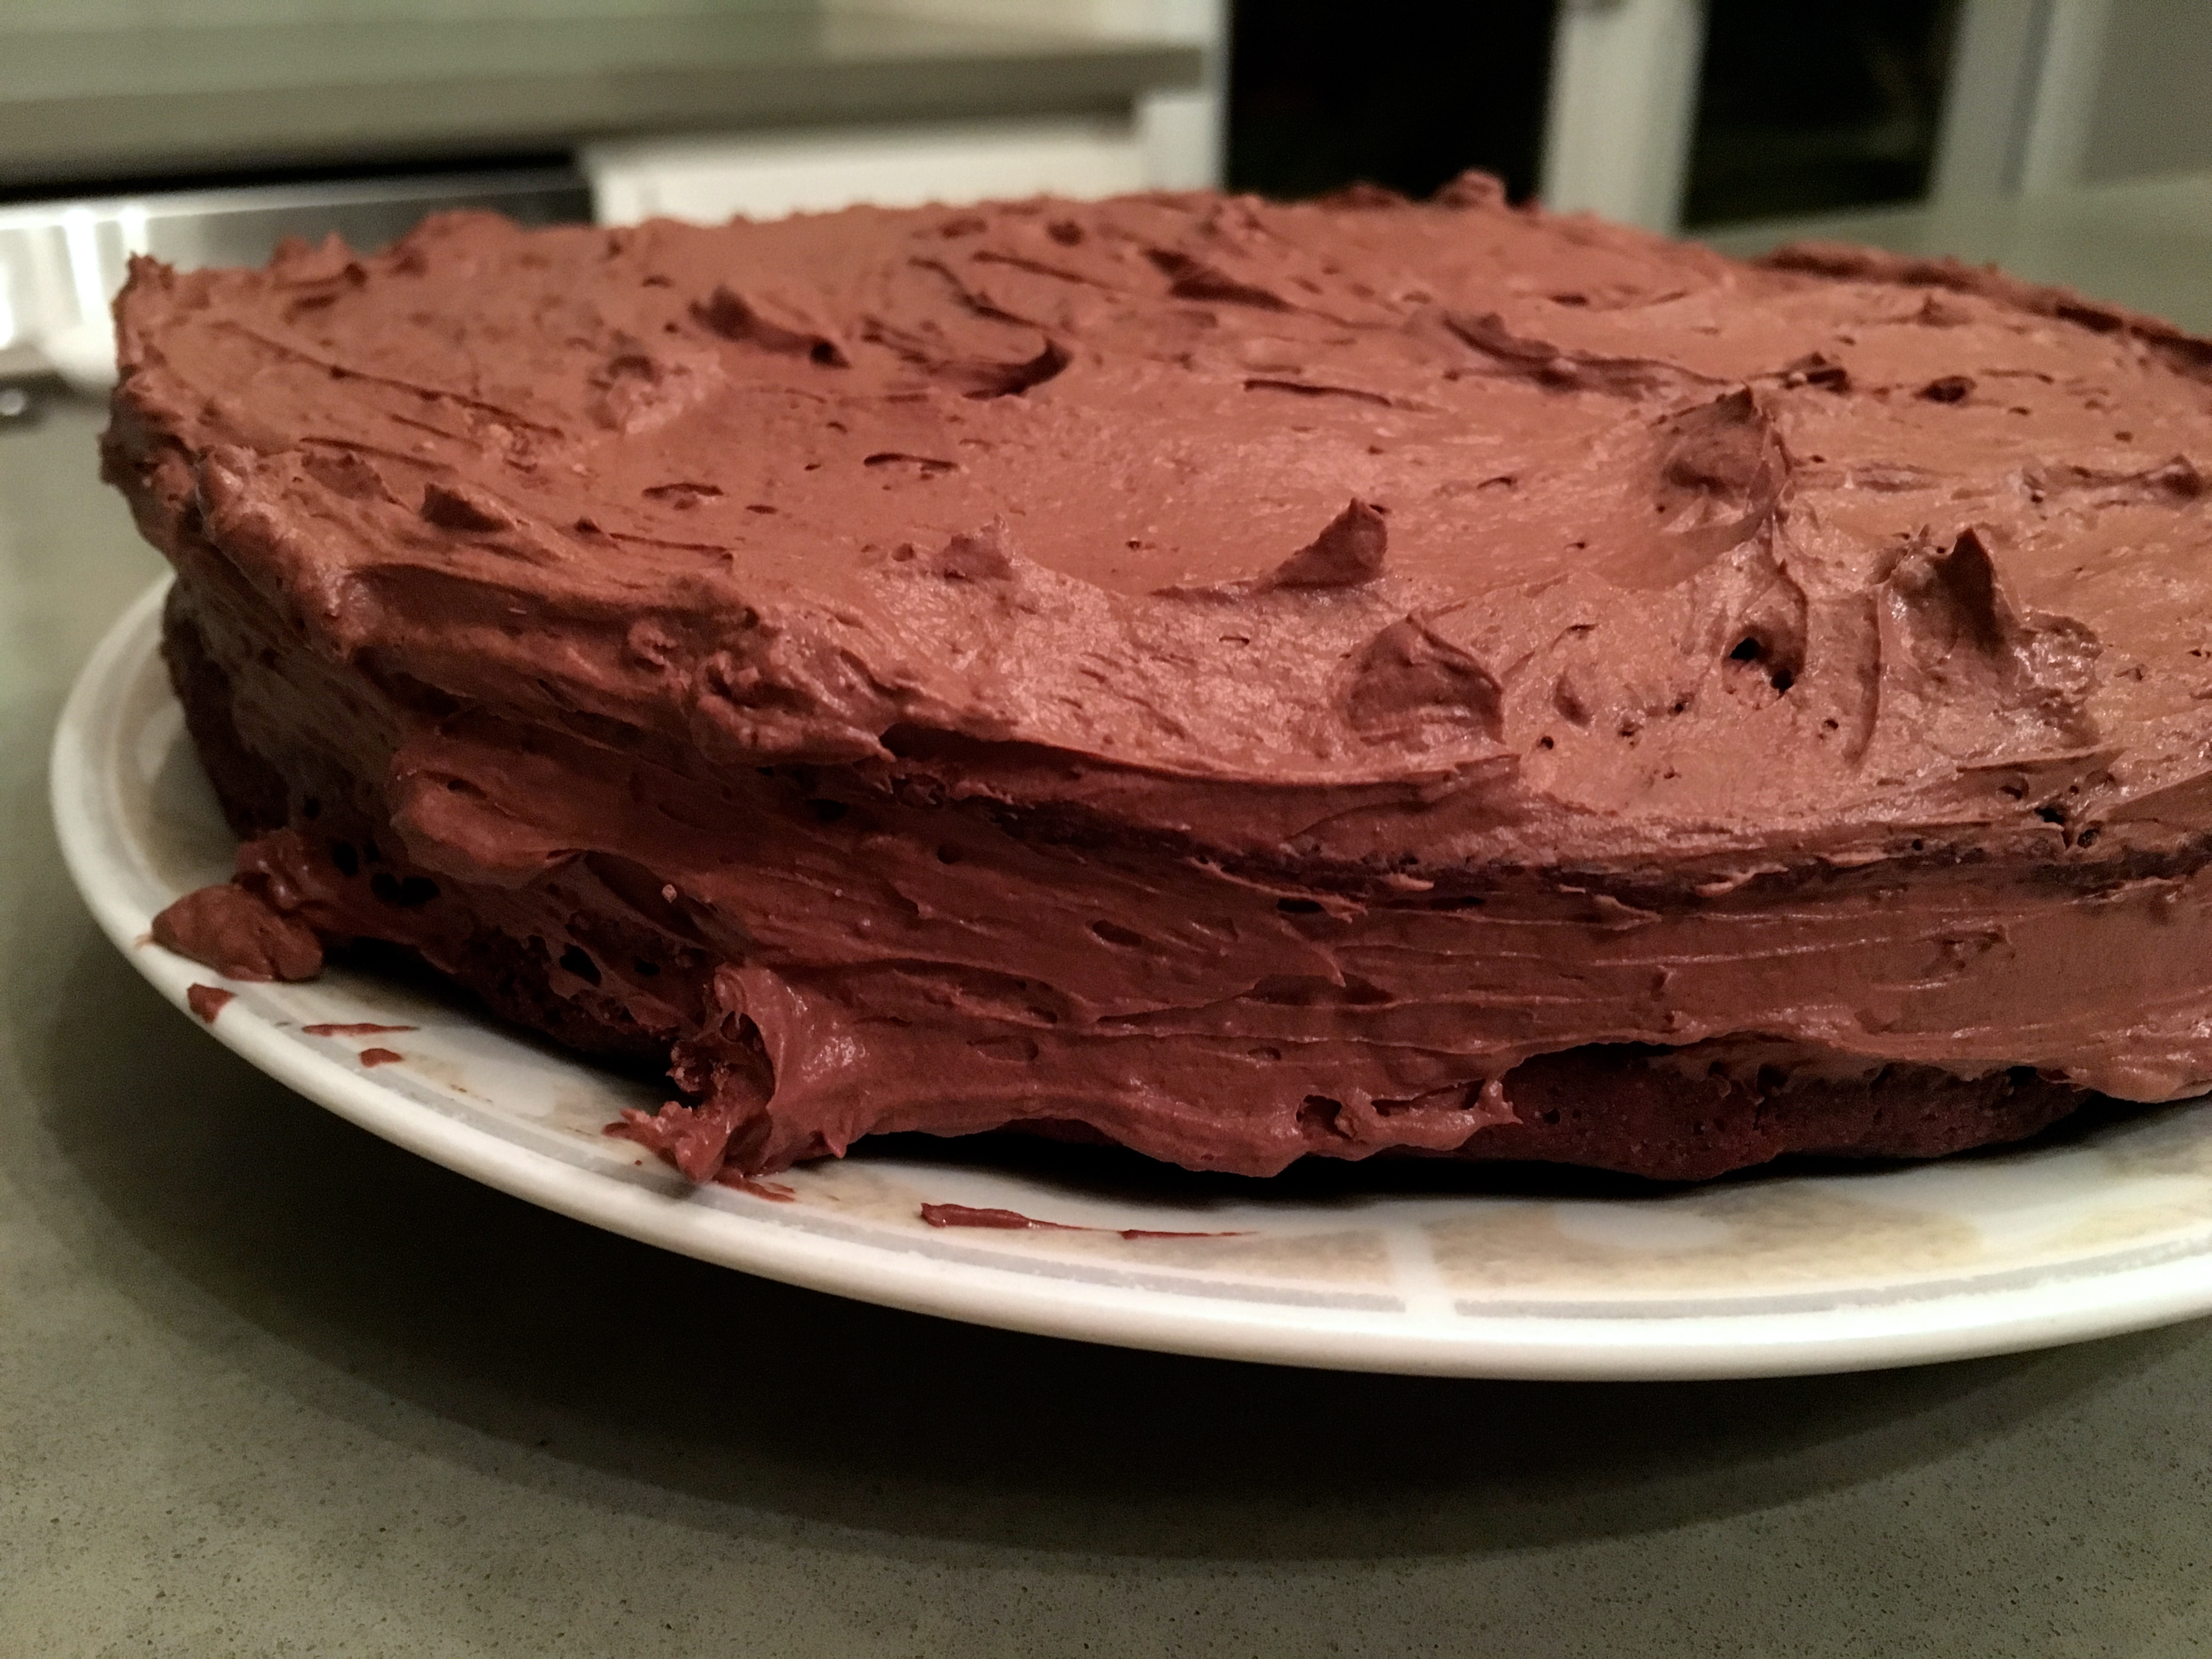 I Made The Frosting With The Solid Portion Of A Can Of Coconut Milk Plus Cocoa Powder And Nunaturals Liquid Stevia